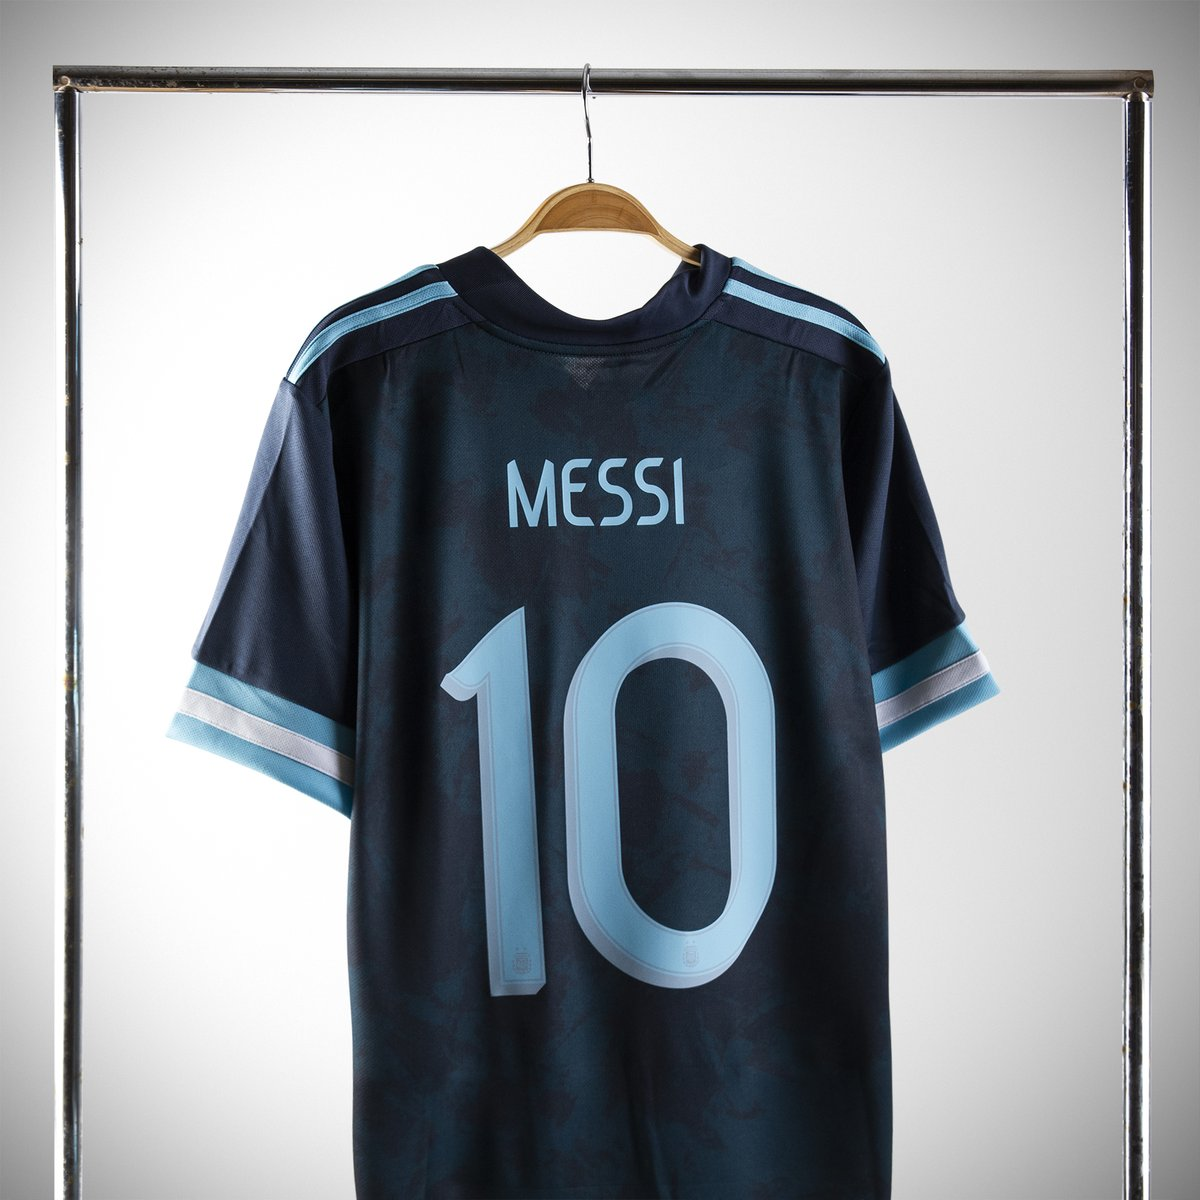 Subside Sports On Twitter B R A N D N E W I N S T O C K Adidas Argentina Away Shirt 2020 2021 With Messi 10 Official Printing Https T Co Mwagfaadsp Https T Co Islztrxp03